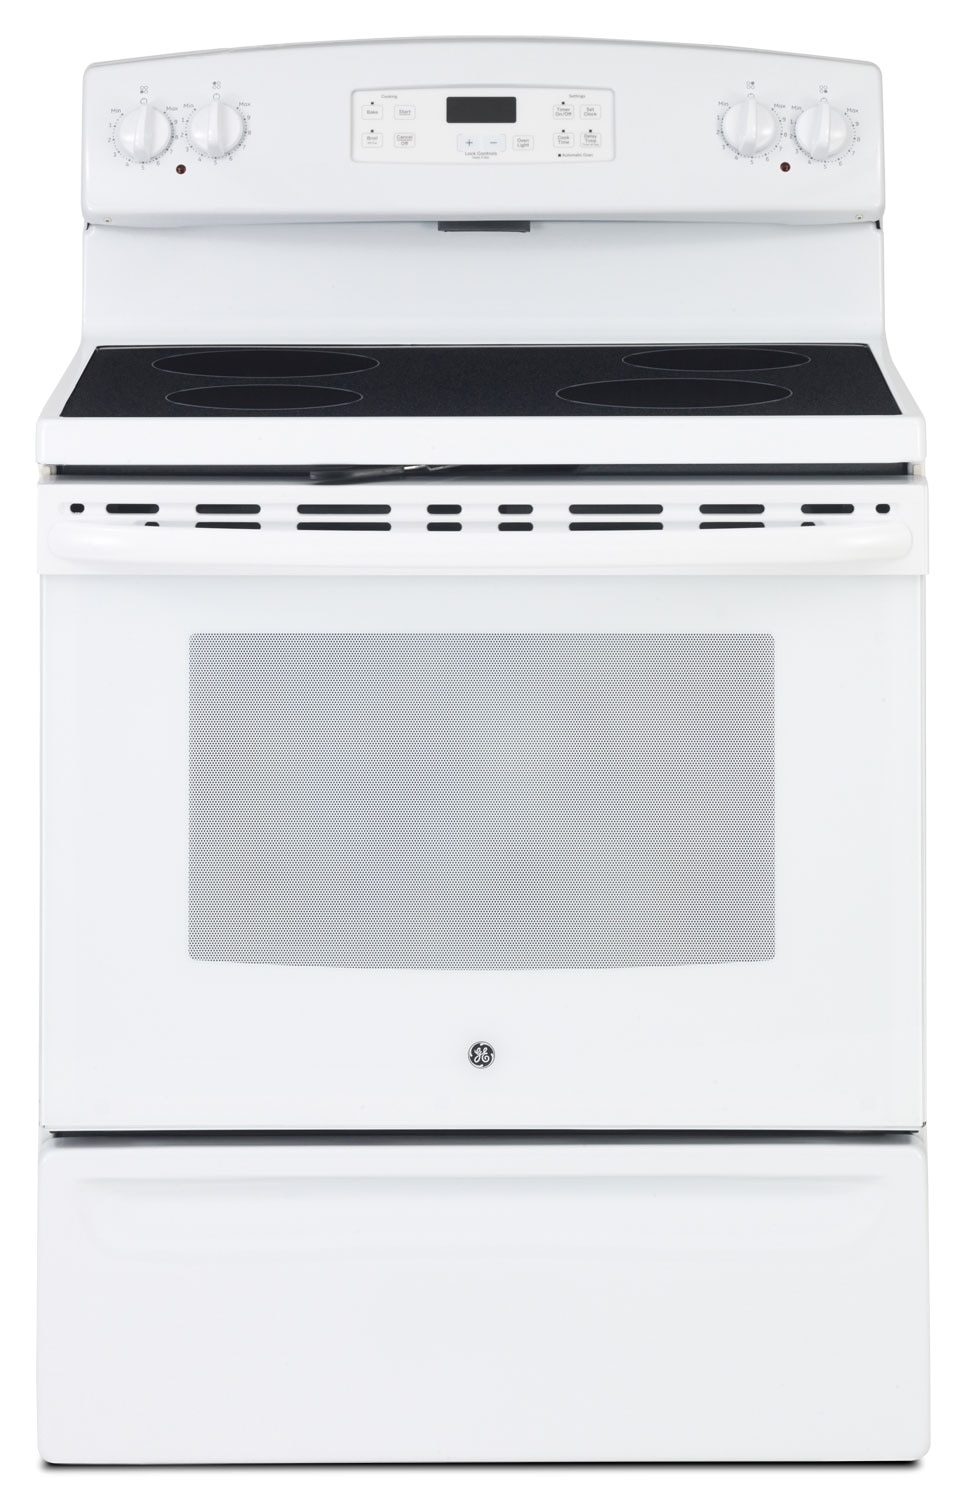 Cooking Products - GE 5.0 Cu. Ft. Freestanding Smooth Top Electric Range - White